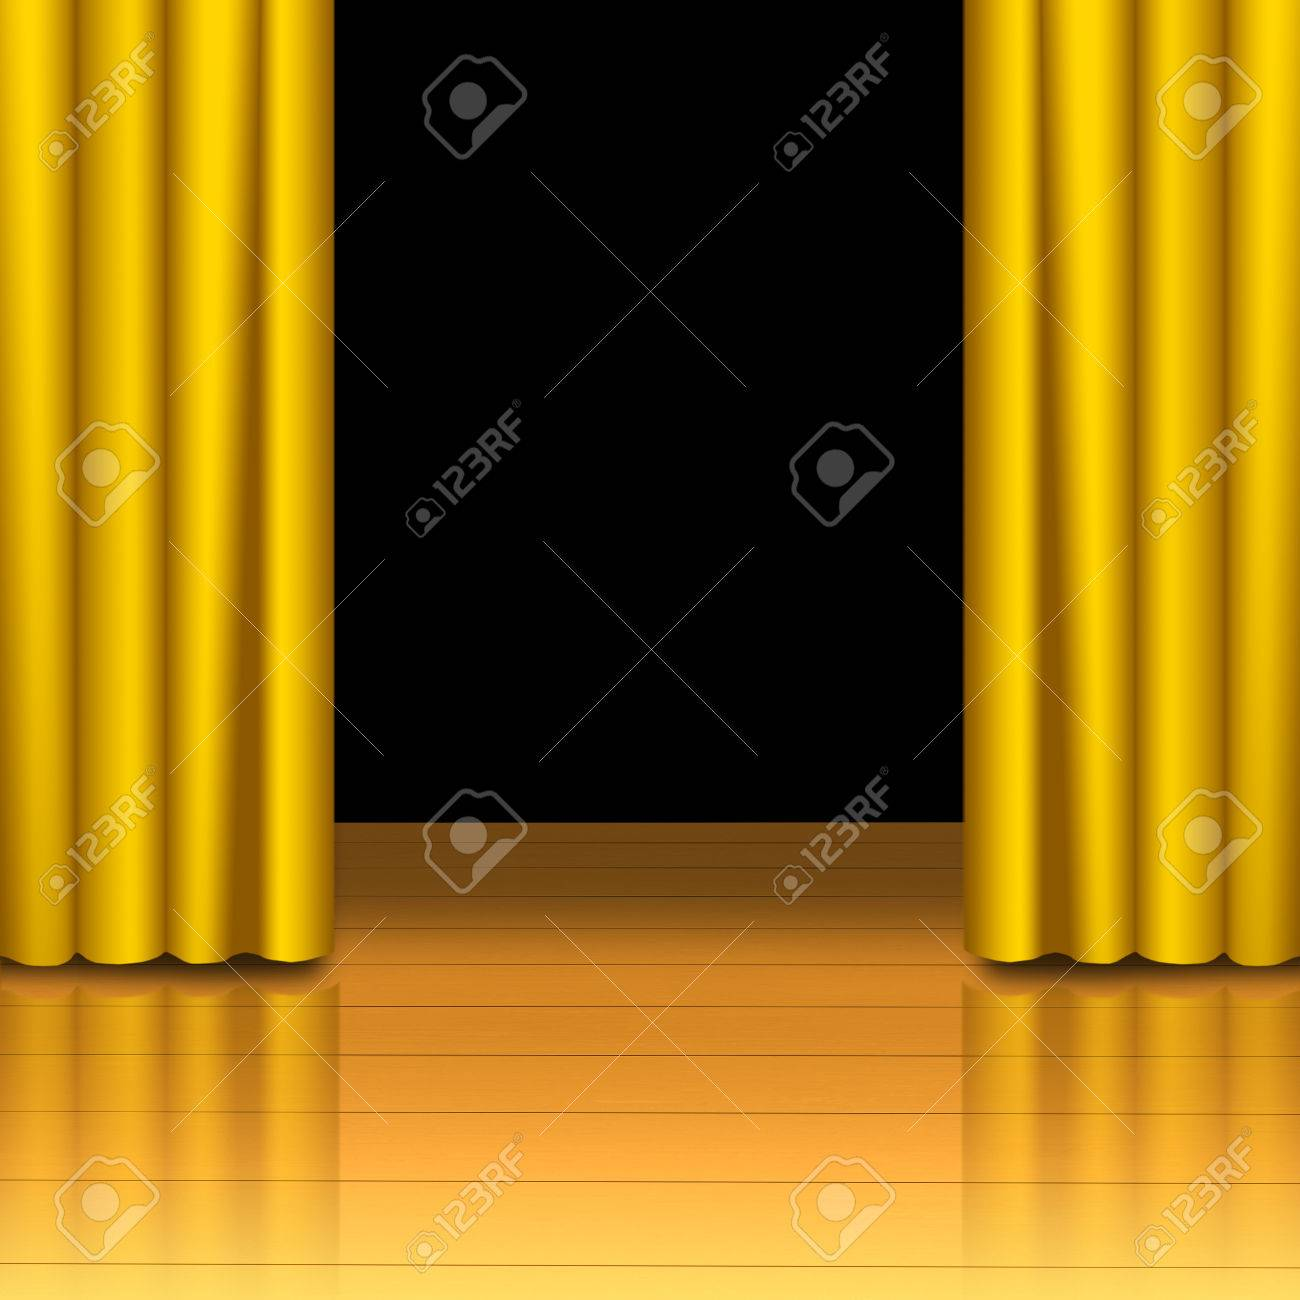 Open black curtain - Open Black Curtain Golden Curtain Open On Wood Stage With Black Isolated Stock Photo 23772545